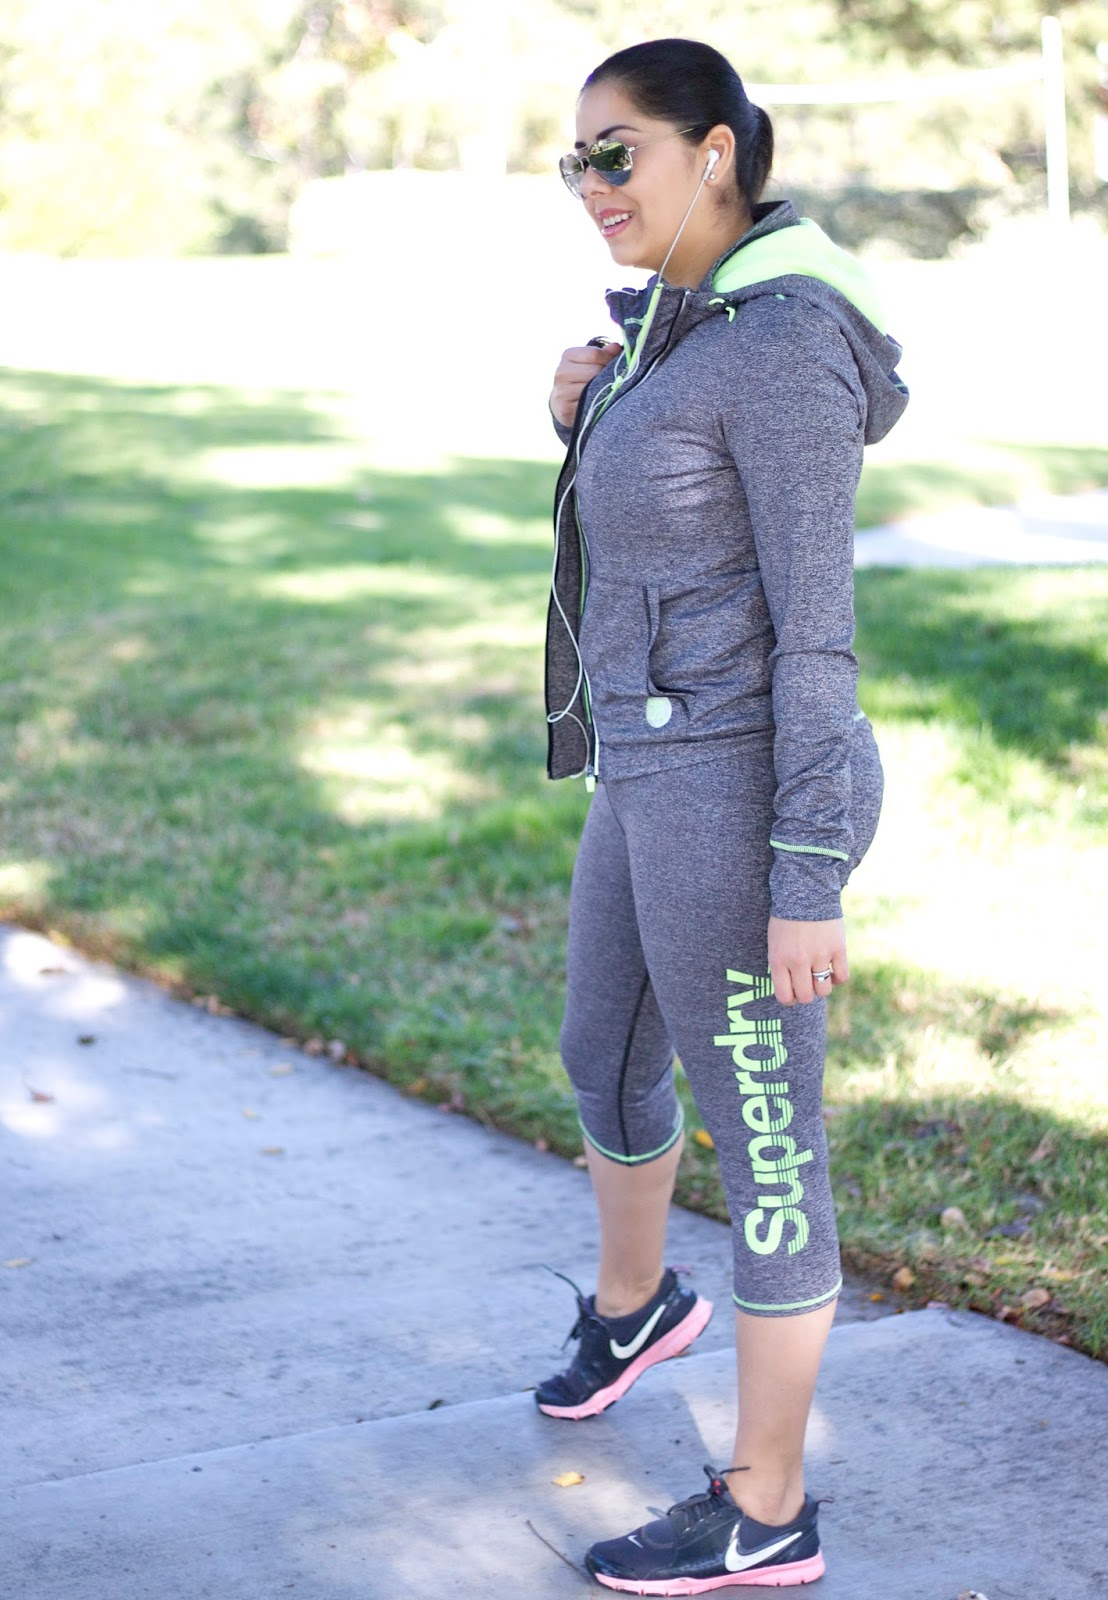 Superdry Working out Outfit, what to wear to the gym, superdry outfit, san diego style blogger, san diego blogger